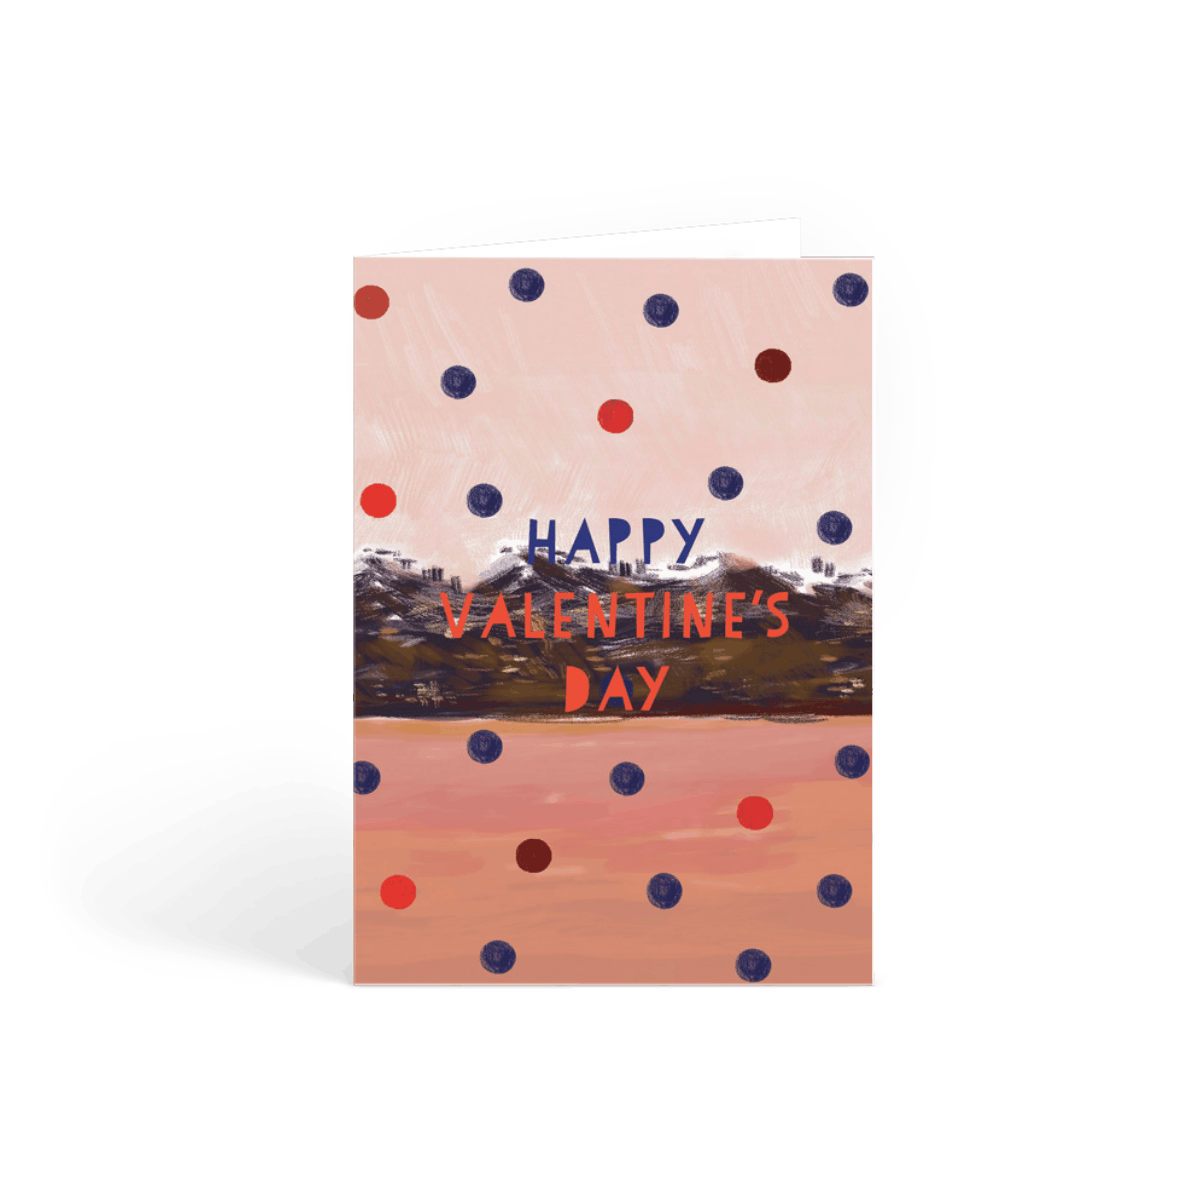 Https%3a%2f%2fwww.papier.com%2fproduct image%2f29113%2f2%2fpolka dot valentine s 7311 front 1510742389.png?ixlib=rb 1.1